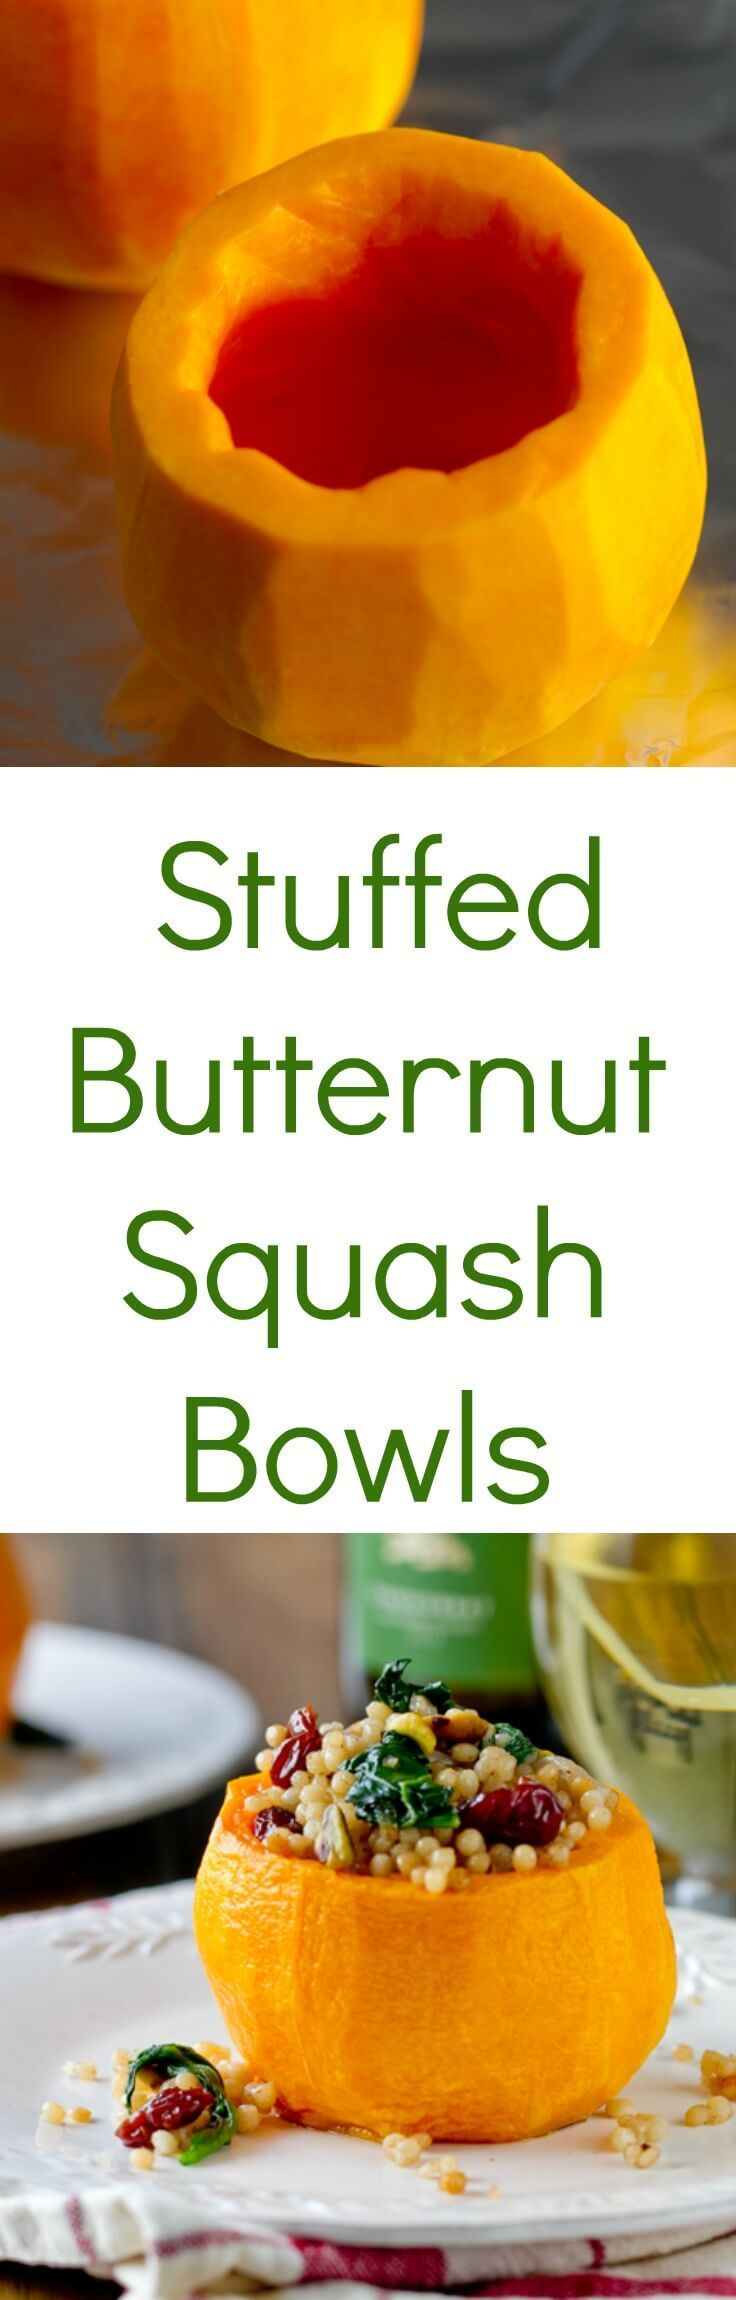 Stuffed Butternut Squash Bowls are an easy vegetarian or vegan entry and can be stuffed with just about anything!!!